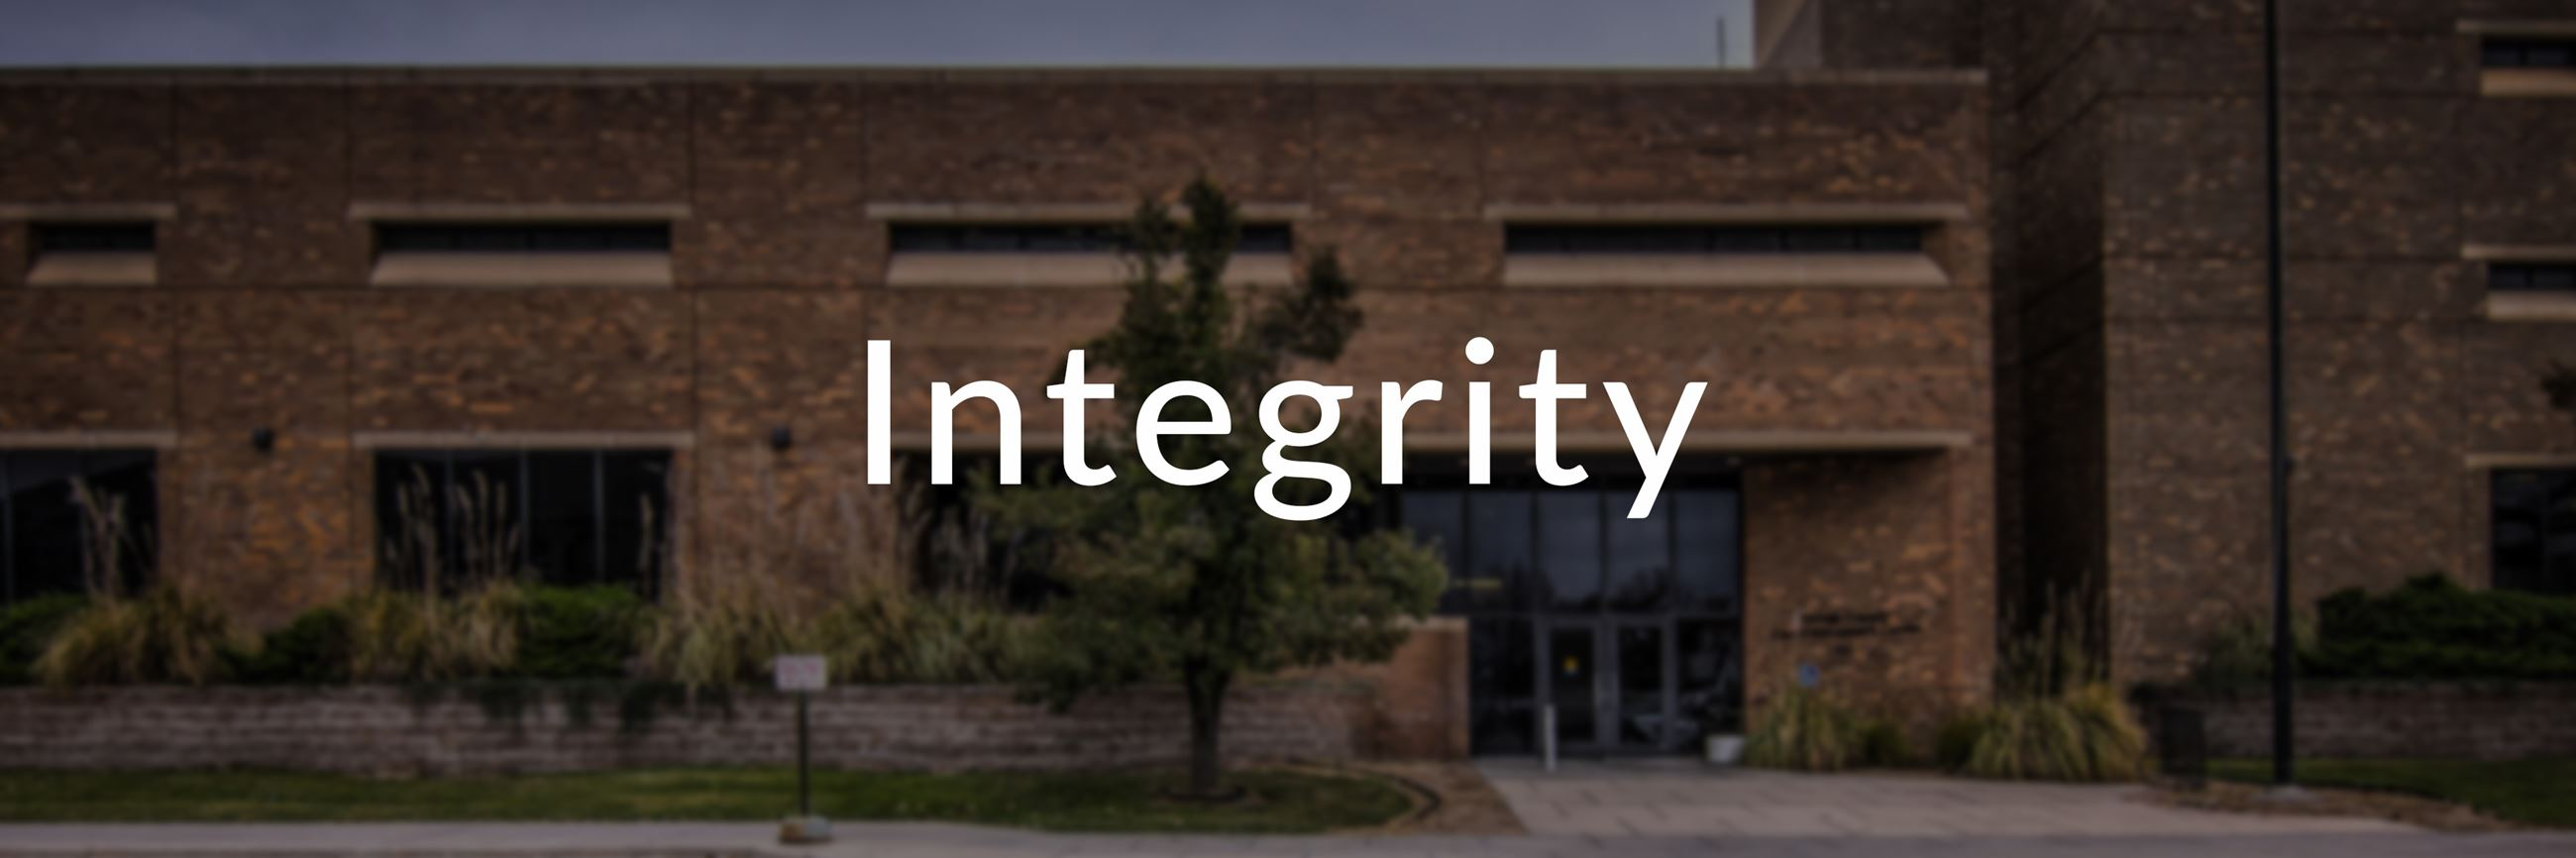 Be honest and trustworthy. Be transparent to citizens and put the county's interests above personal gain.